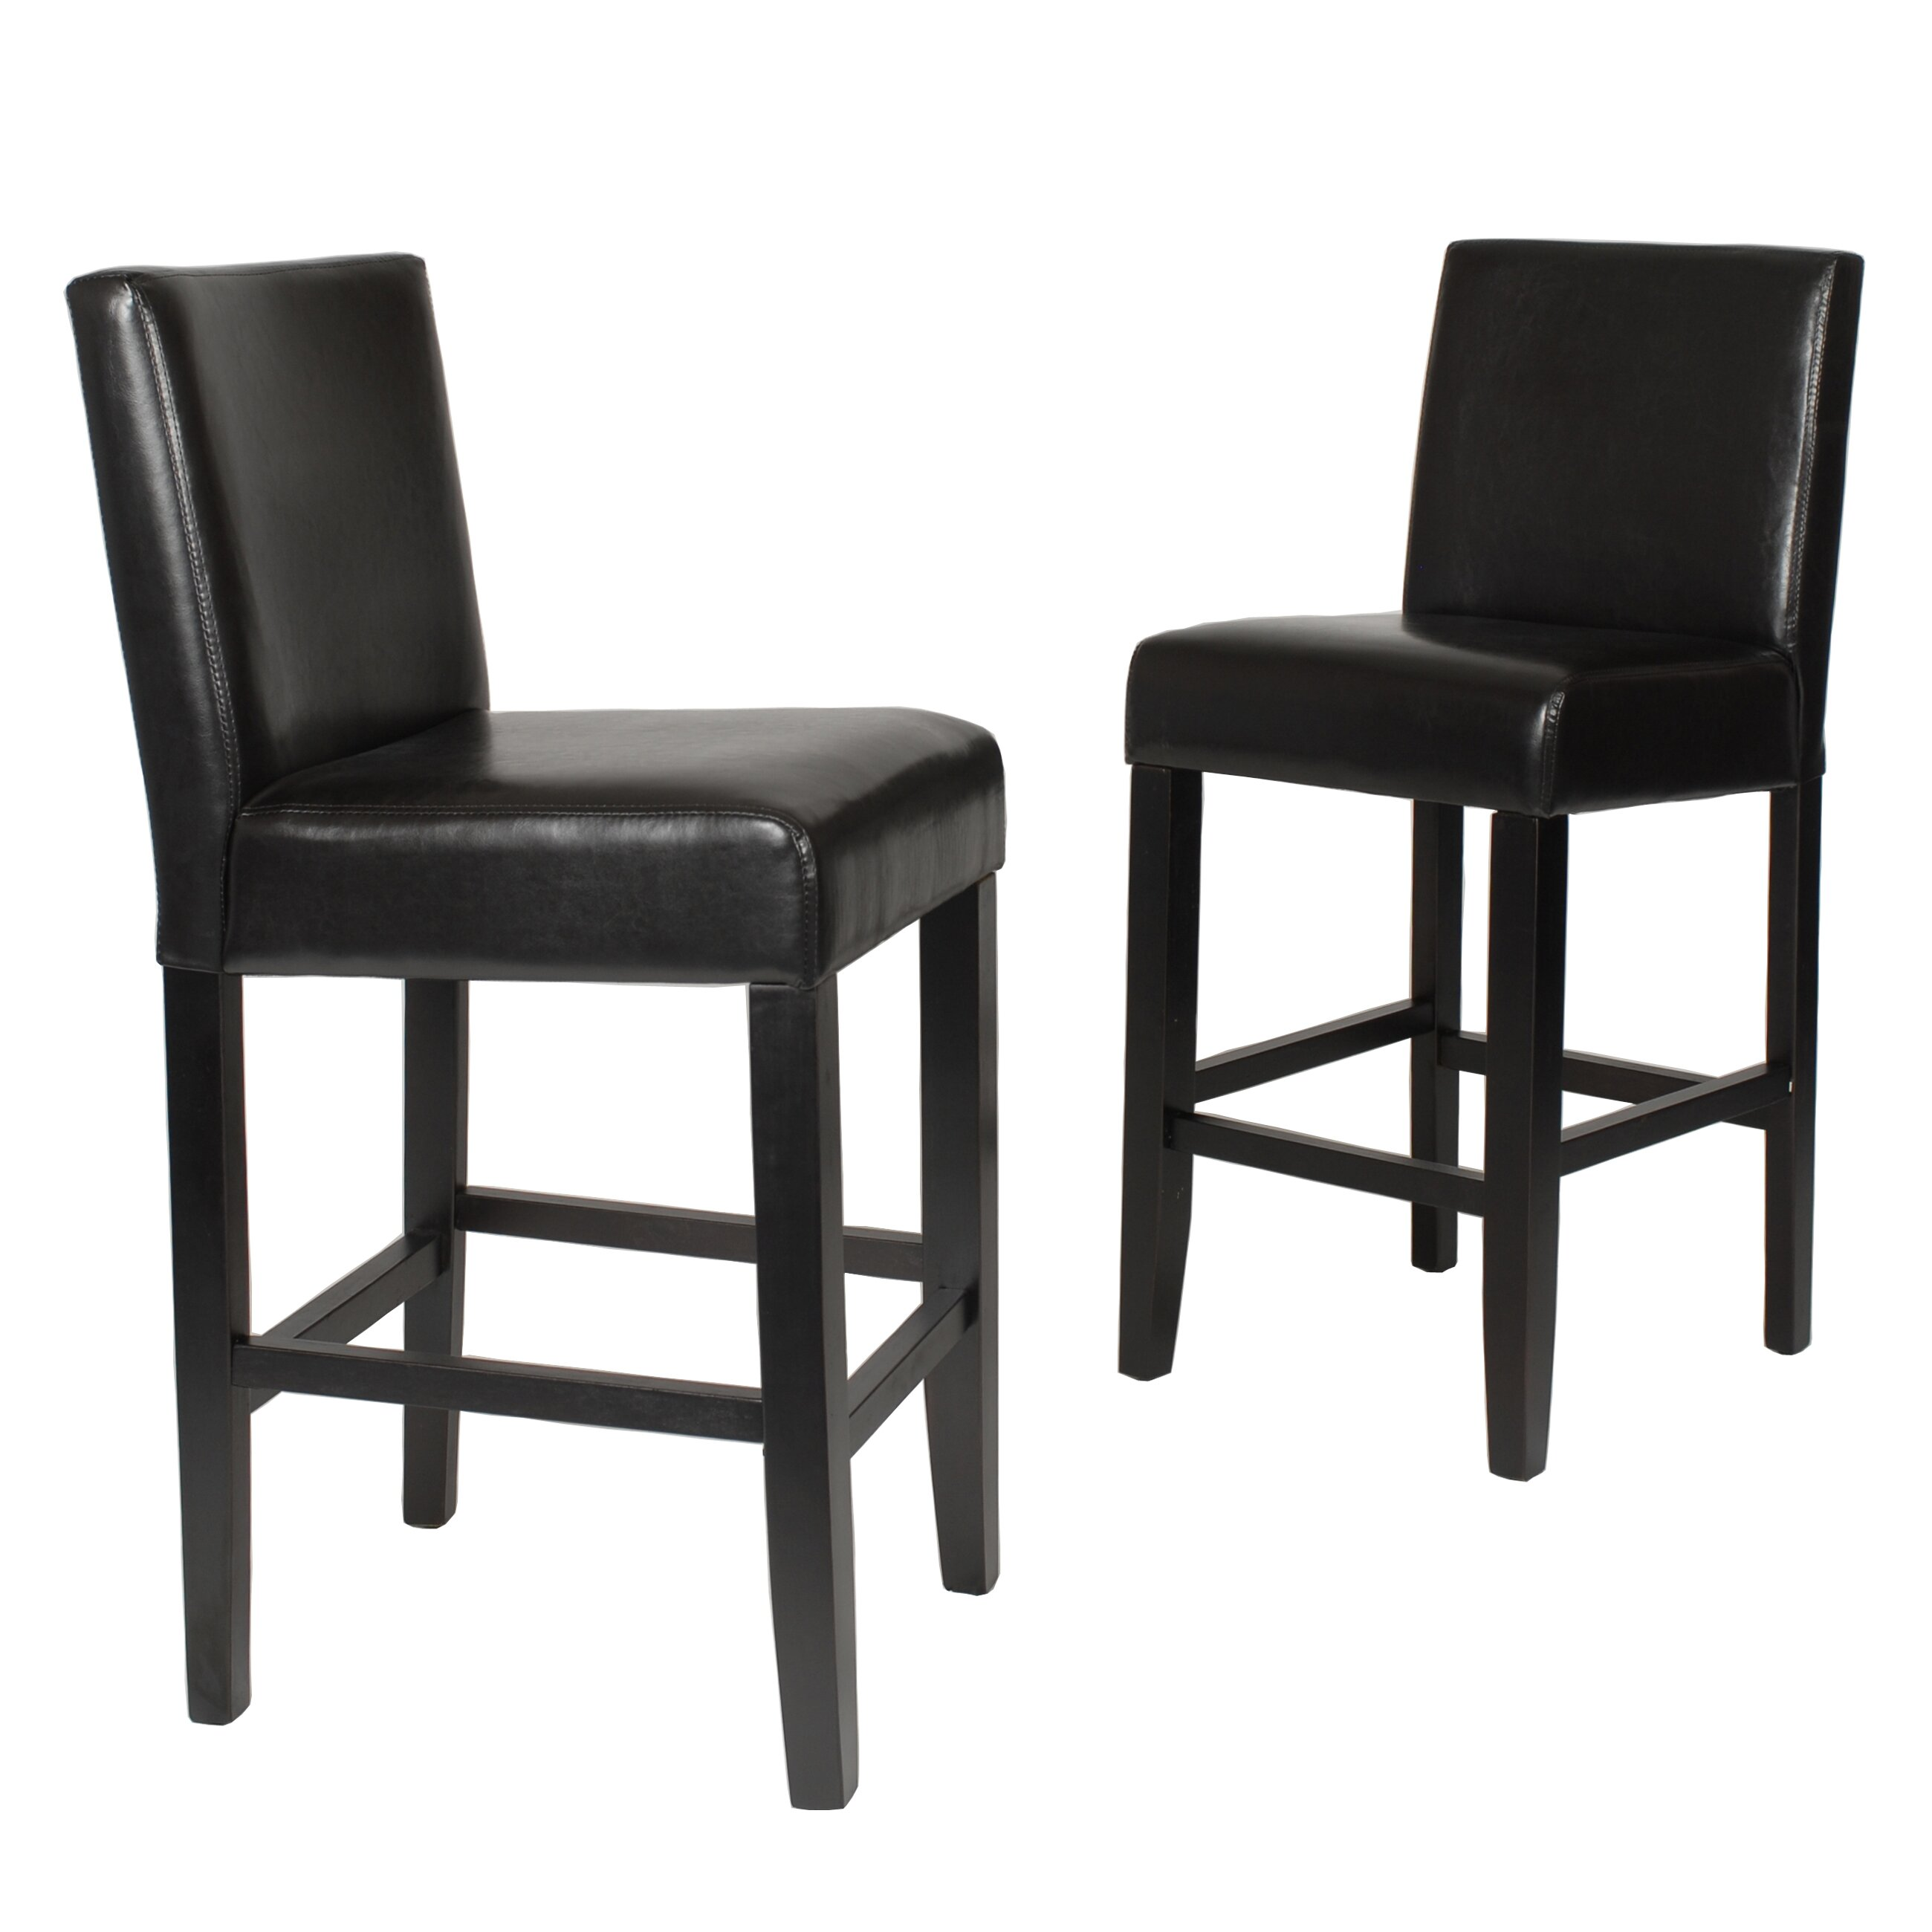 "Roundhill Furniture Citylight 25"" Bar Stool & Reviews"